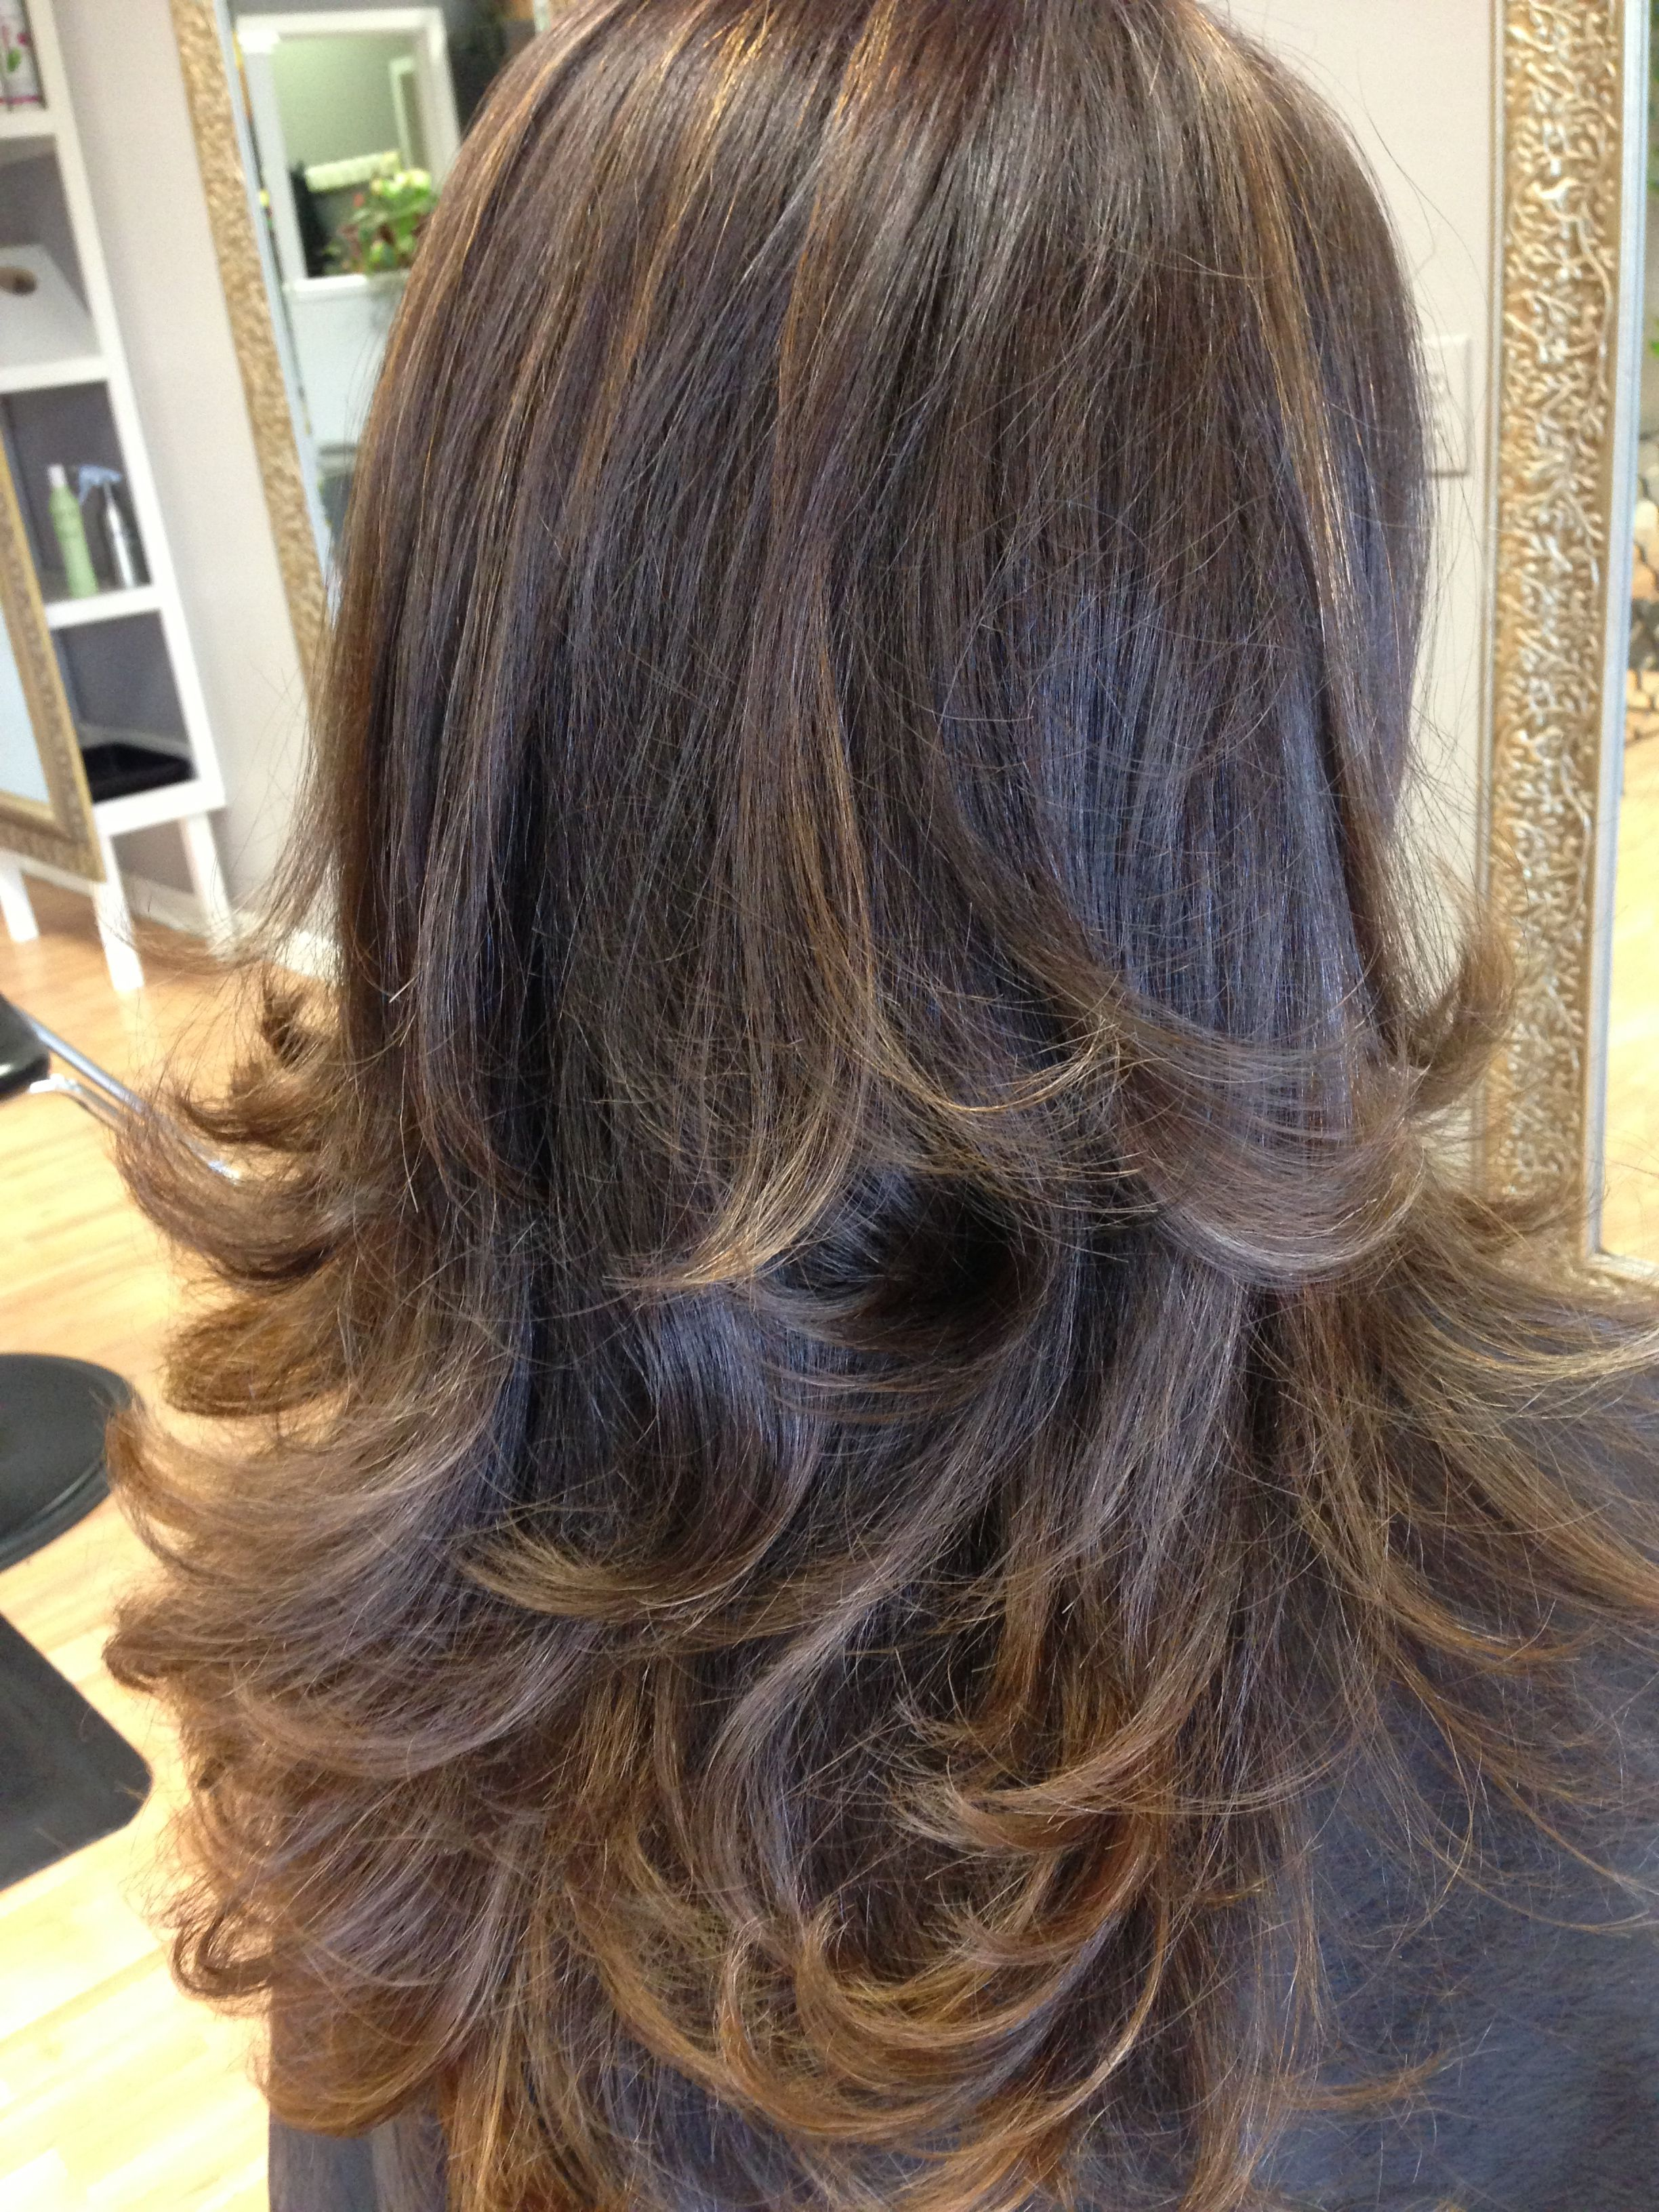 Long layers with buttery caramel highlights Hair by PAULA Paula